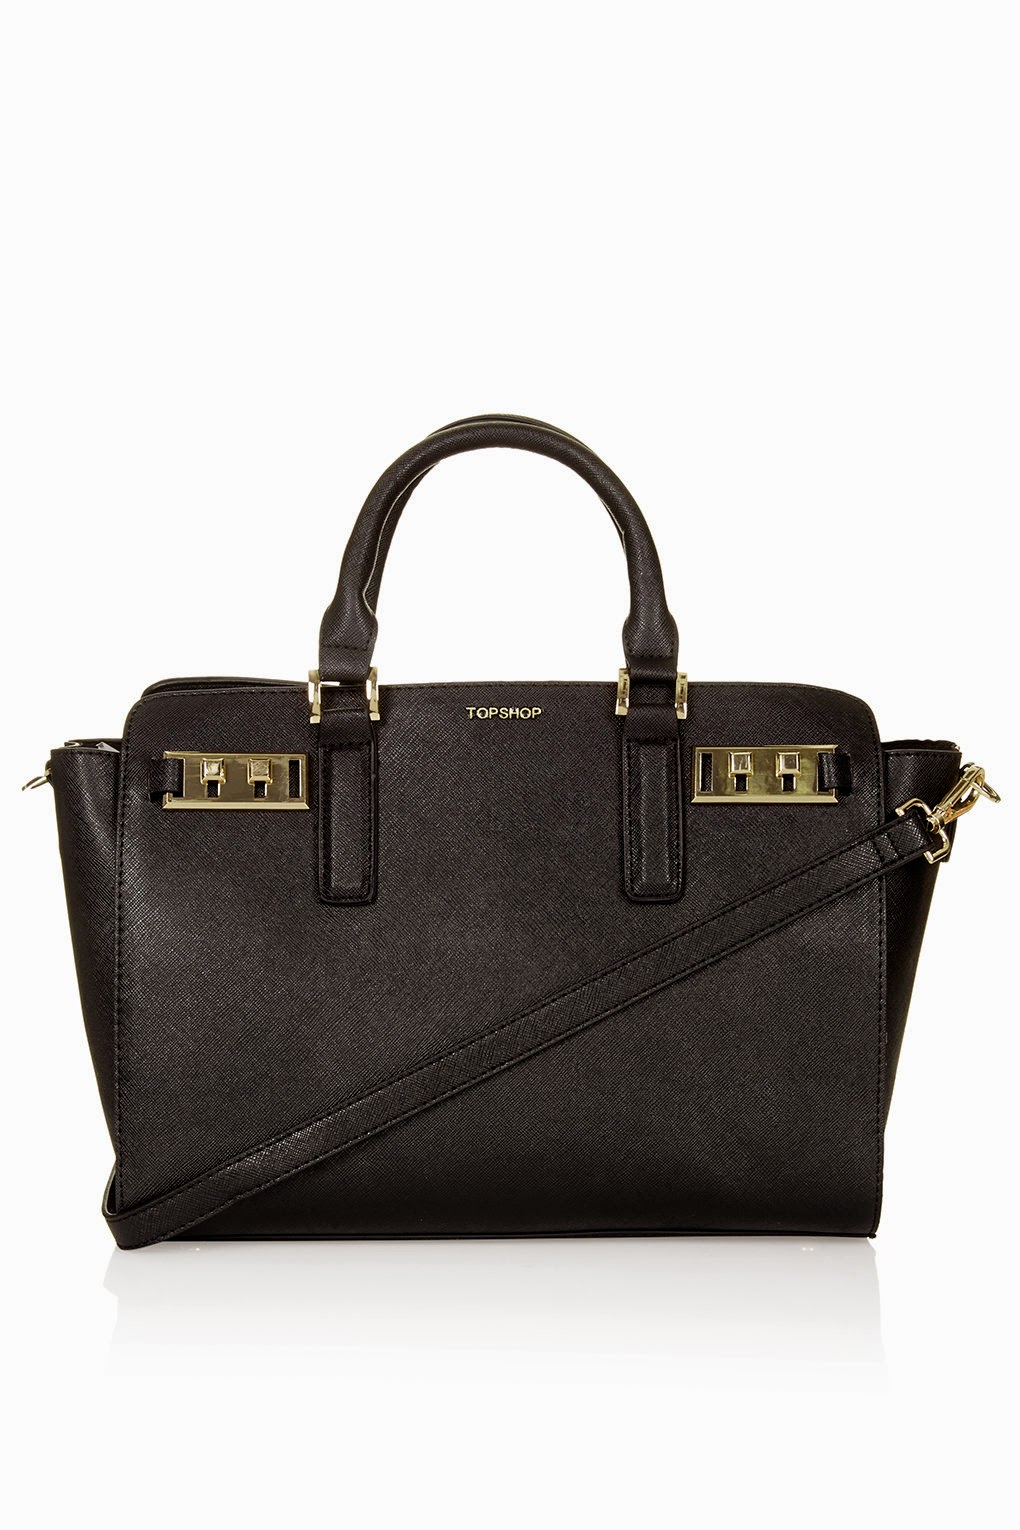 topshop black buckle handbag